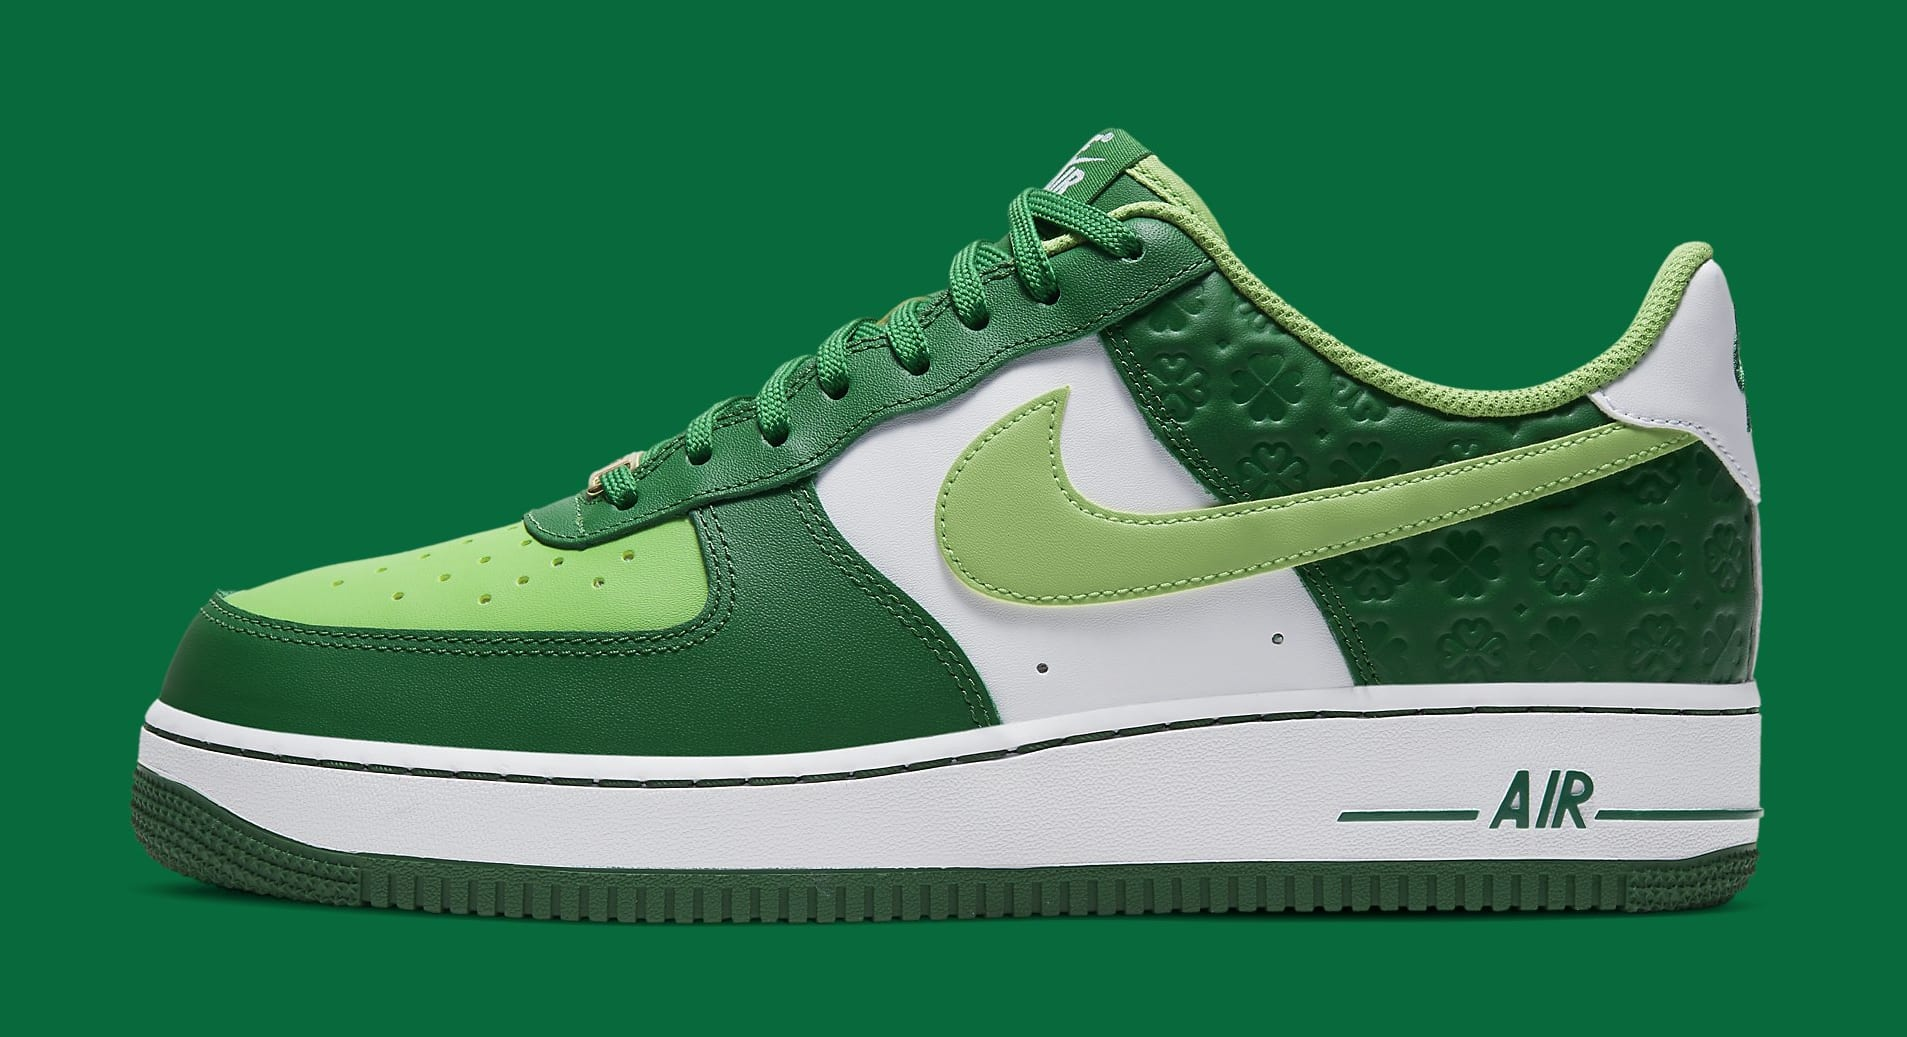 Nike Air Force 1 Low 'St. Patrick's Day' DD8458-300 Lateral